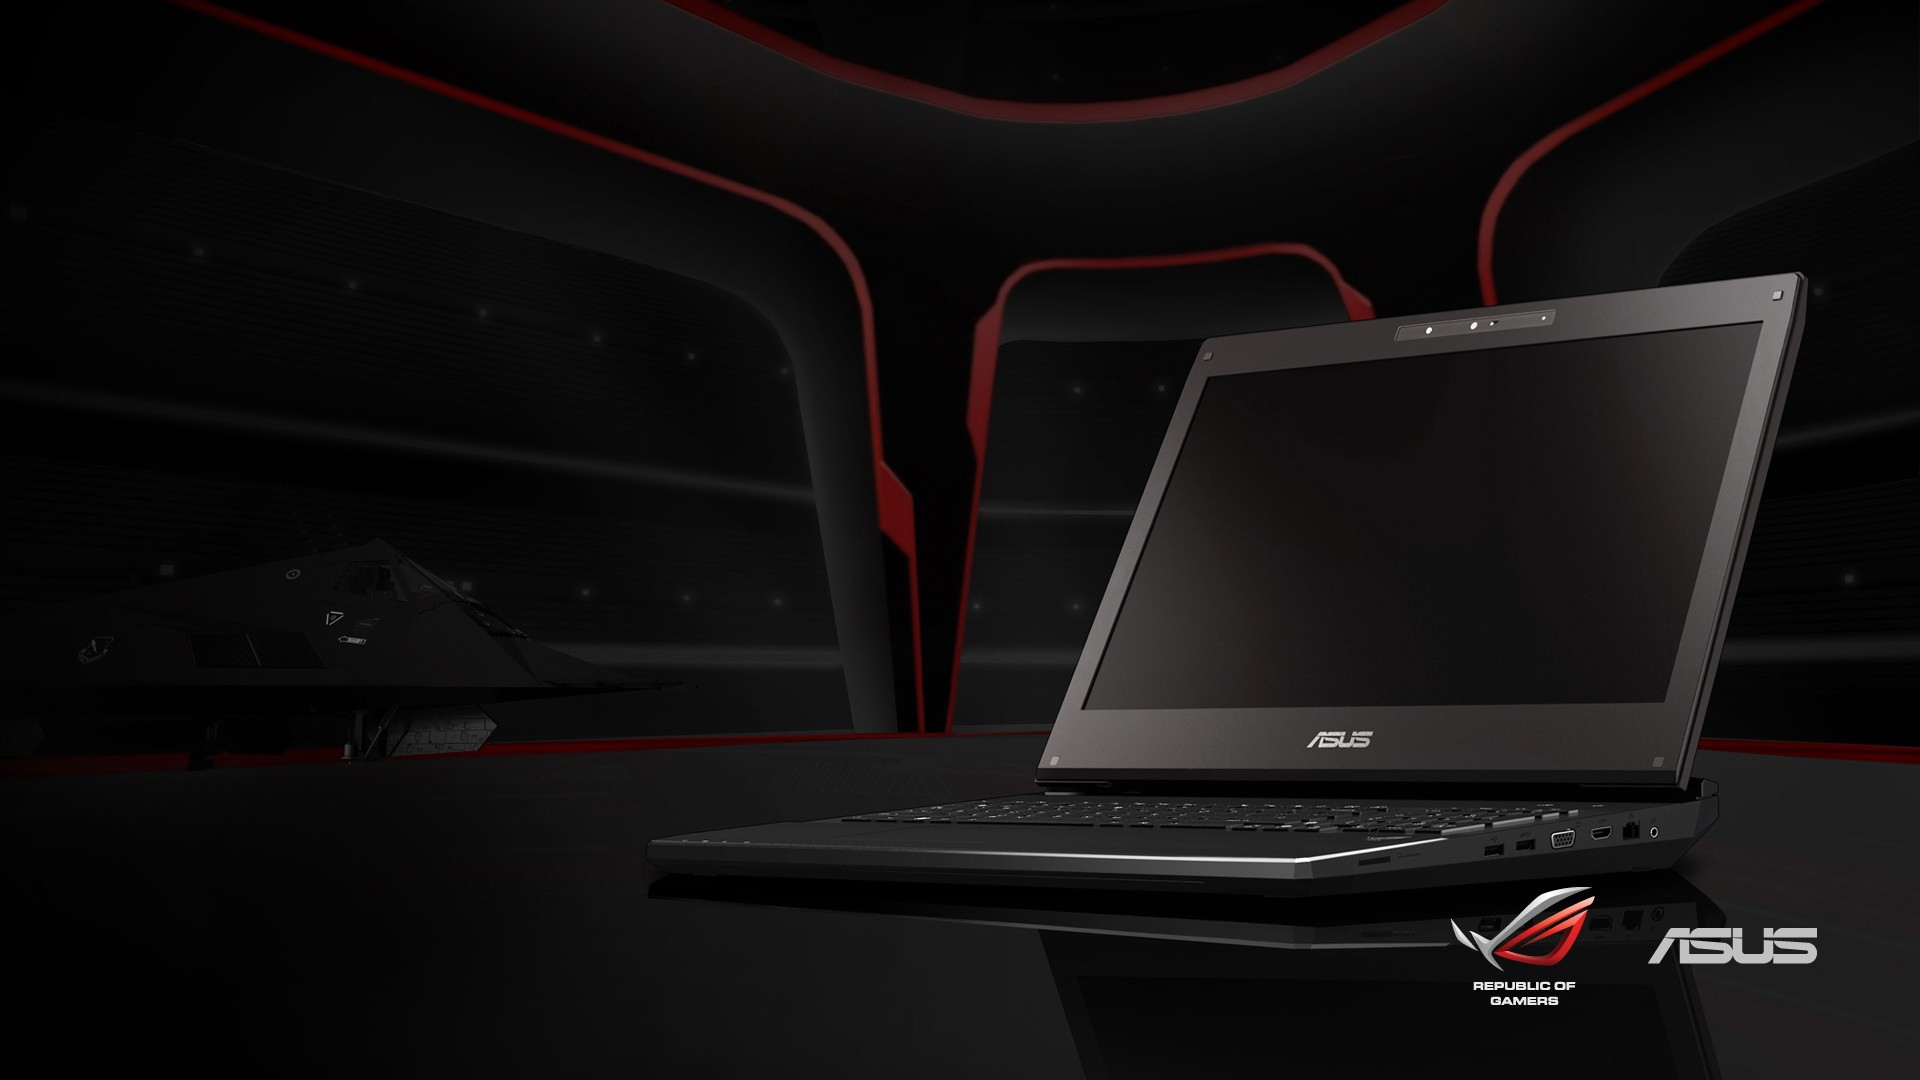 Free Asus Laptop Wallpaper Downloads Wallpapersafari